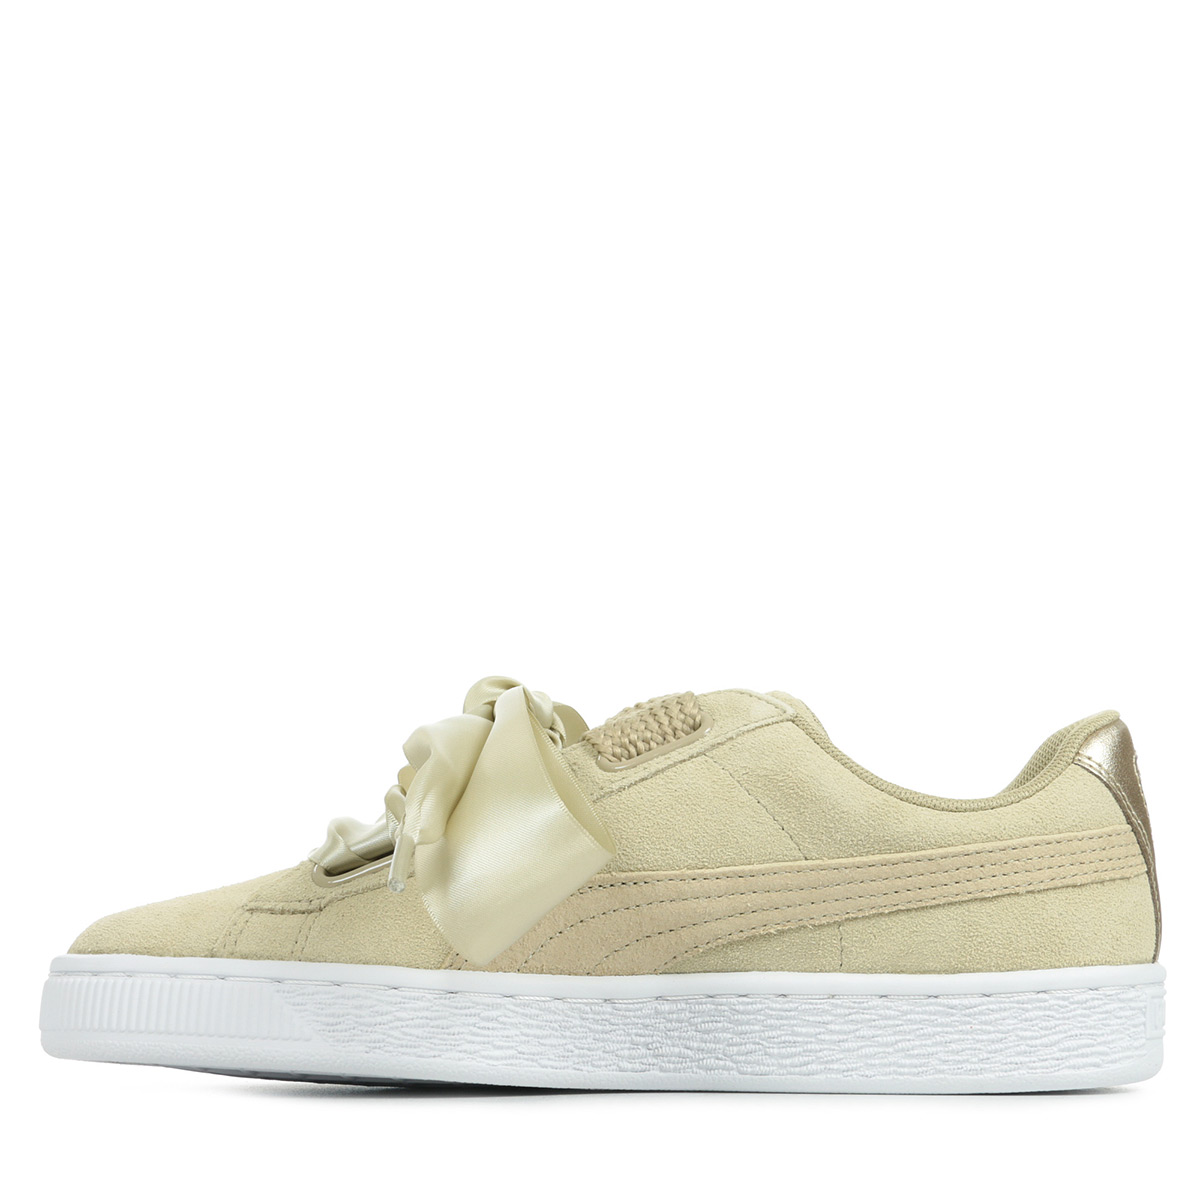 Puma Basket Heart MetSafari Wn's 36408301, Baskets mode femme